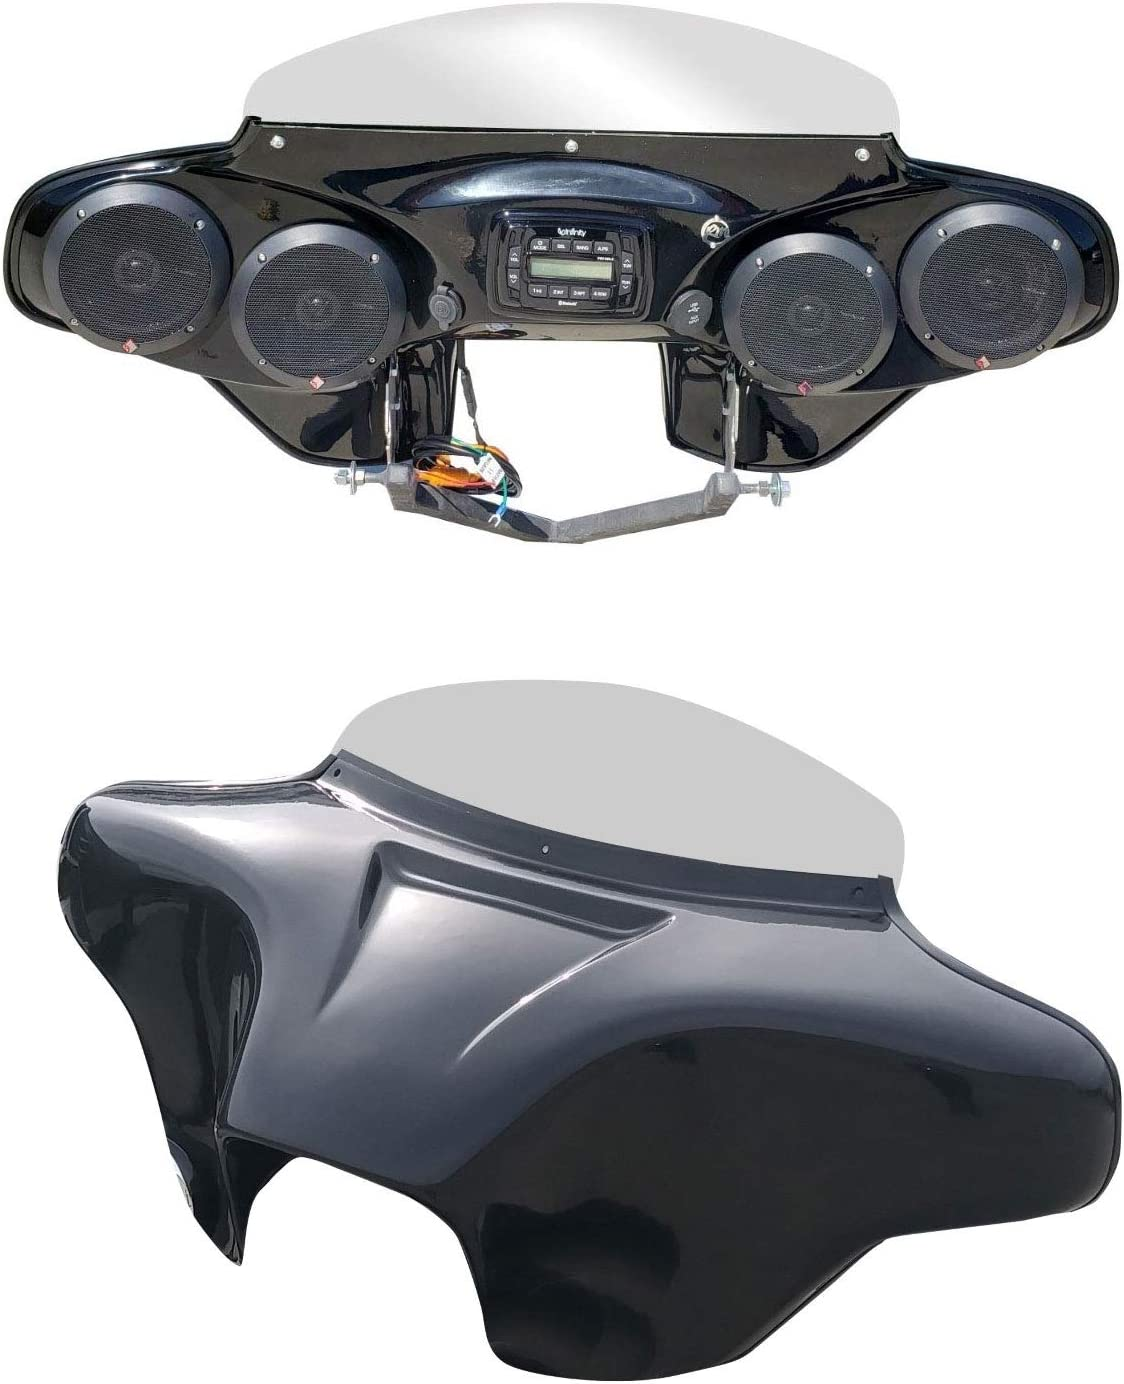 Reckless Motorcycles Batwing Fairing for HD Road King with Stereo Speakers}